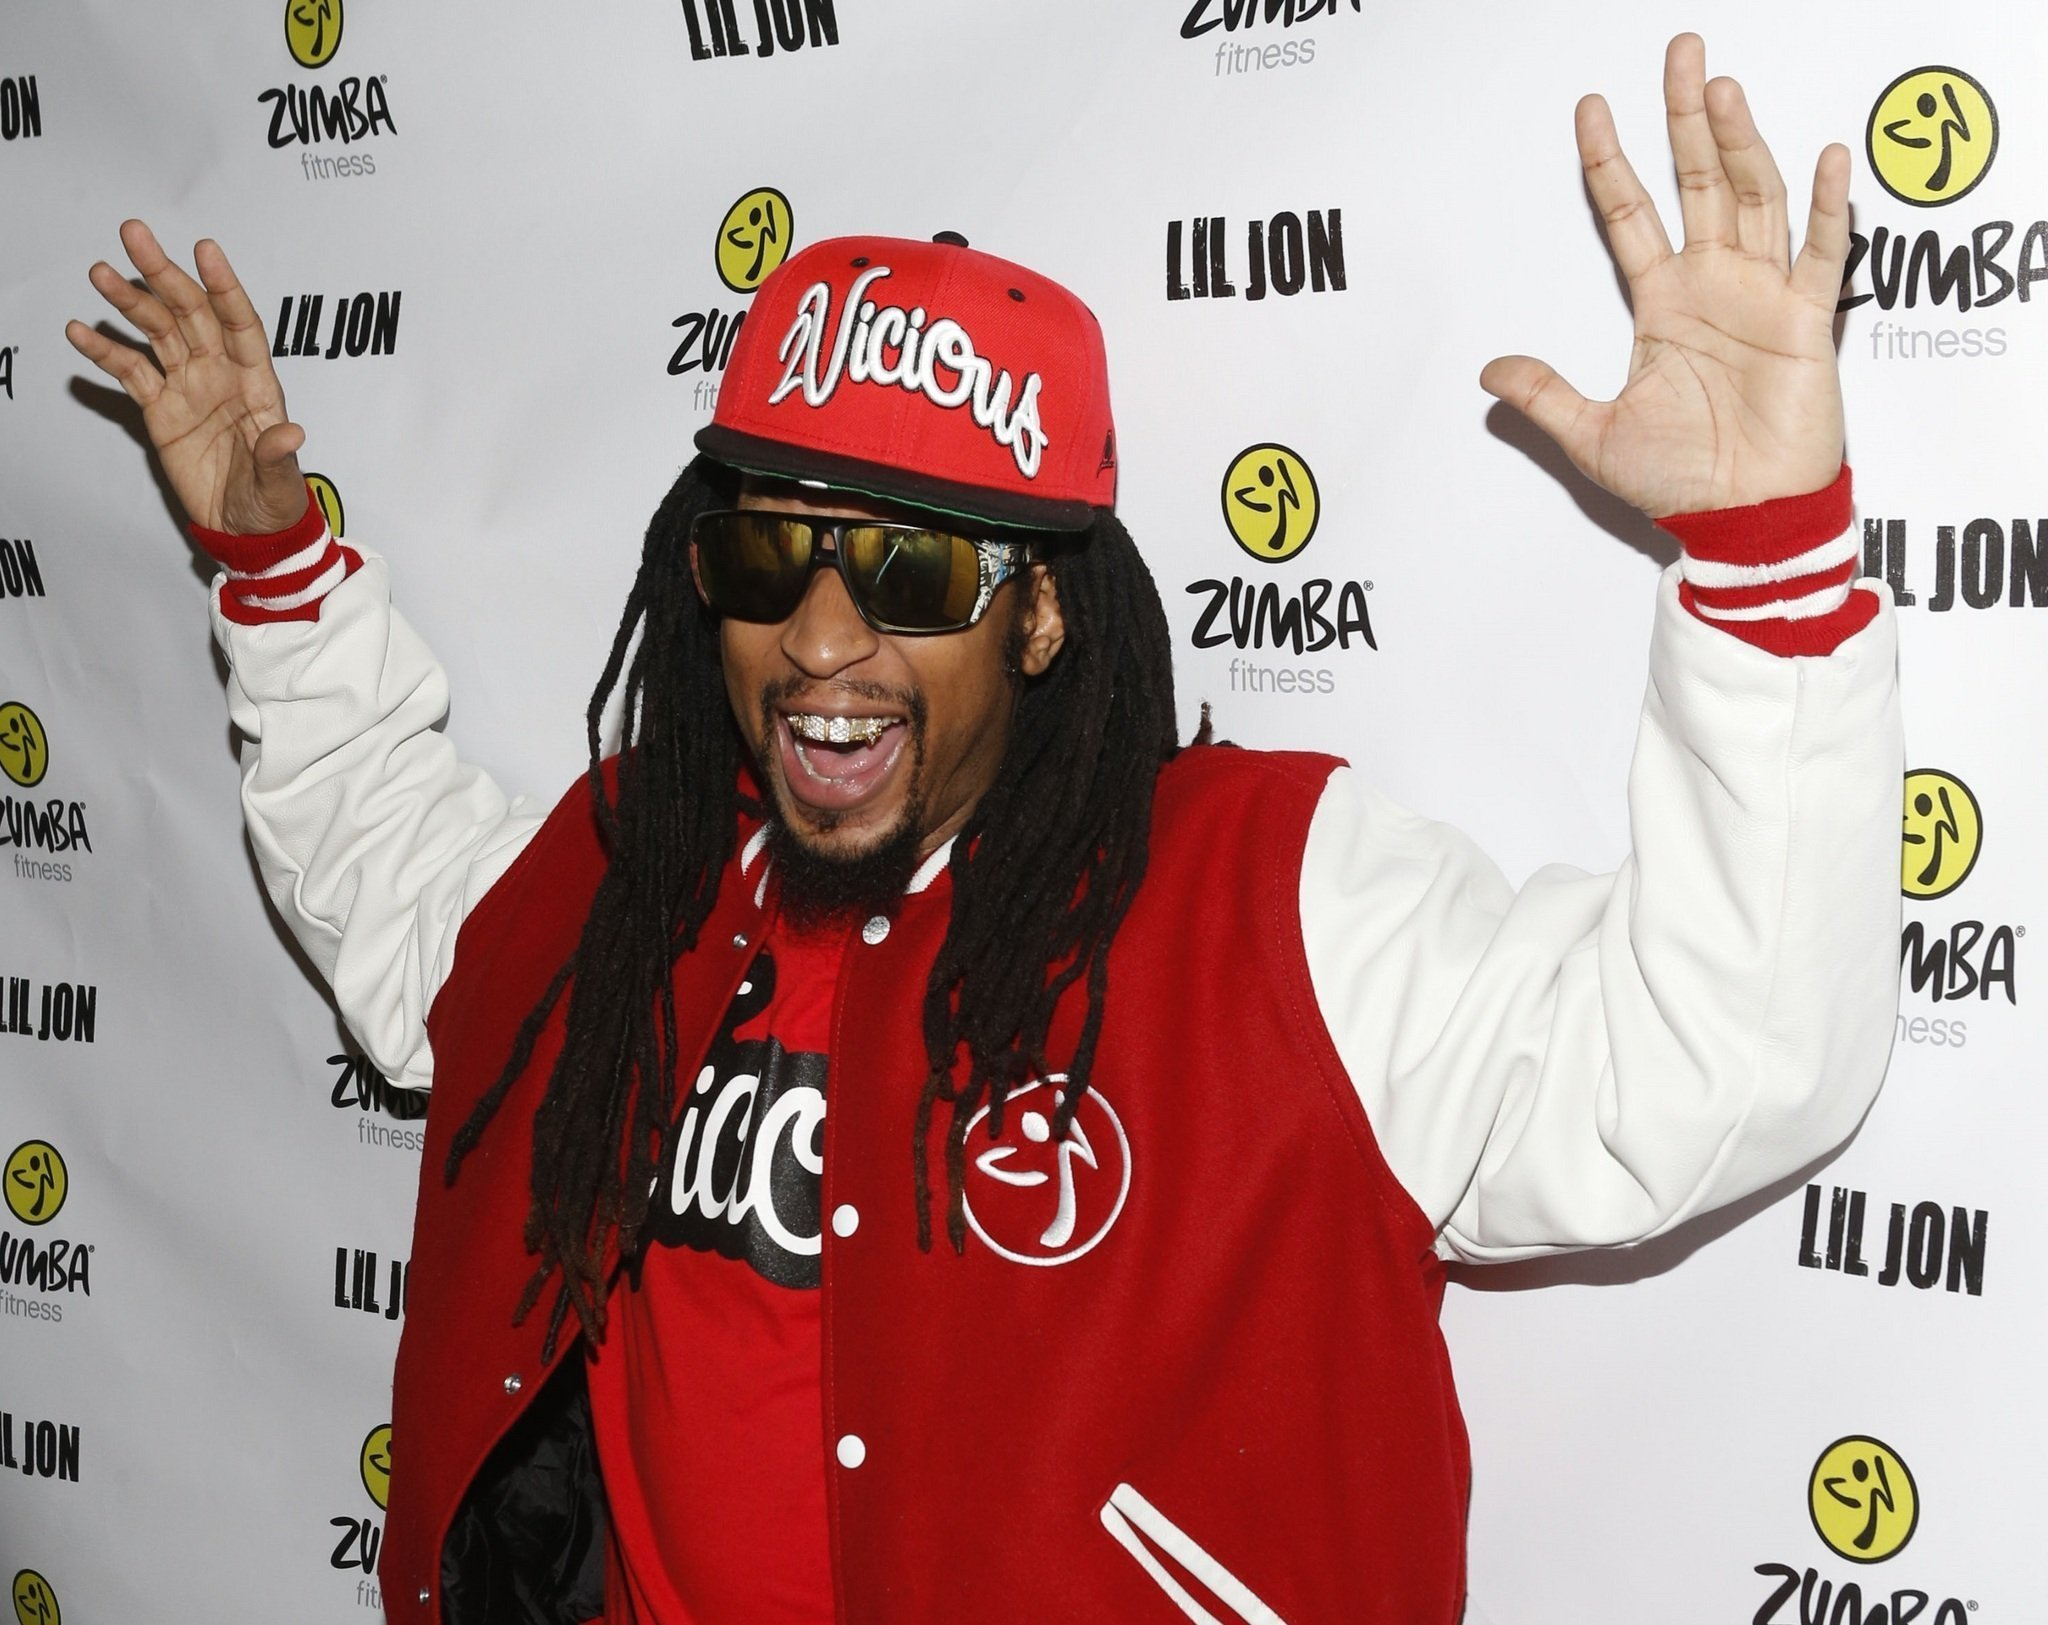 Lil Jon Wallpapers Images Photos Pictures Backgrounds 2048x1625